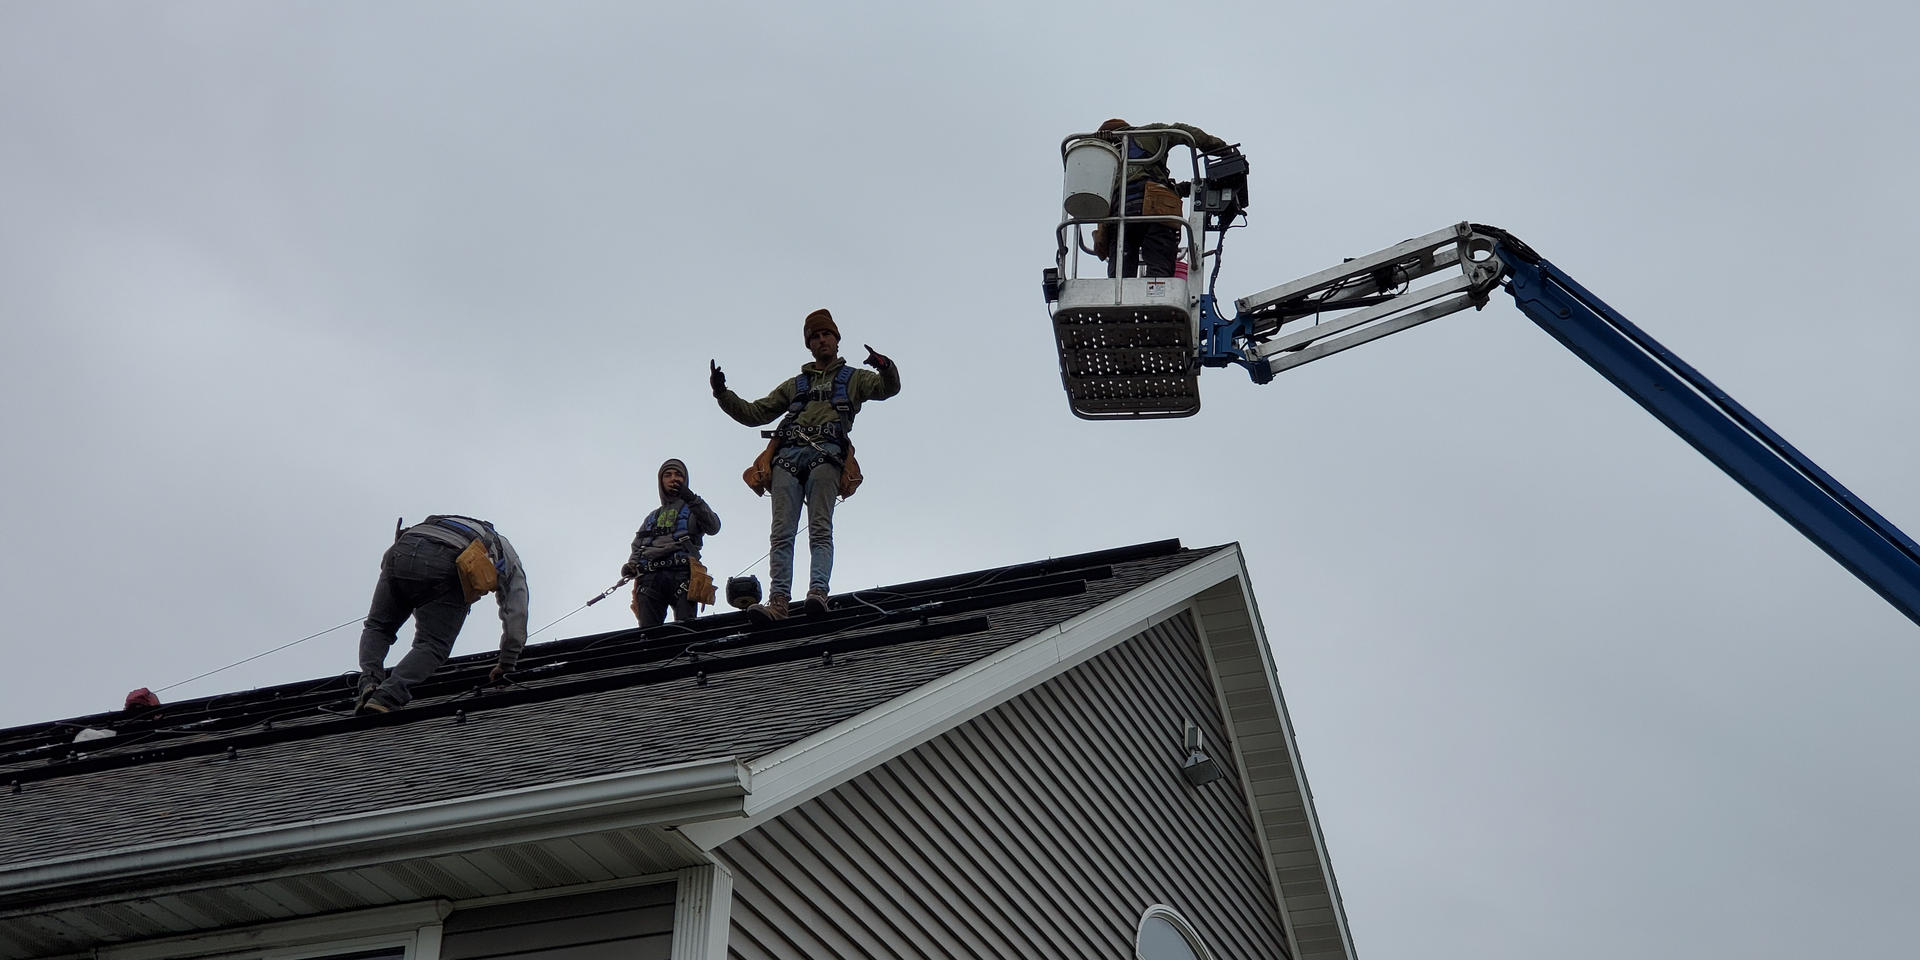 The Hanson House Roof Project